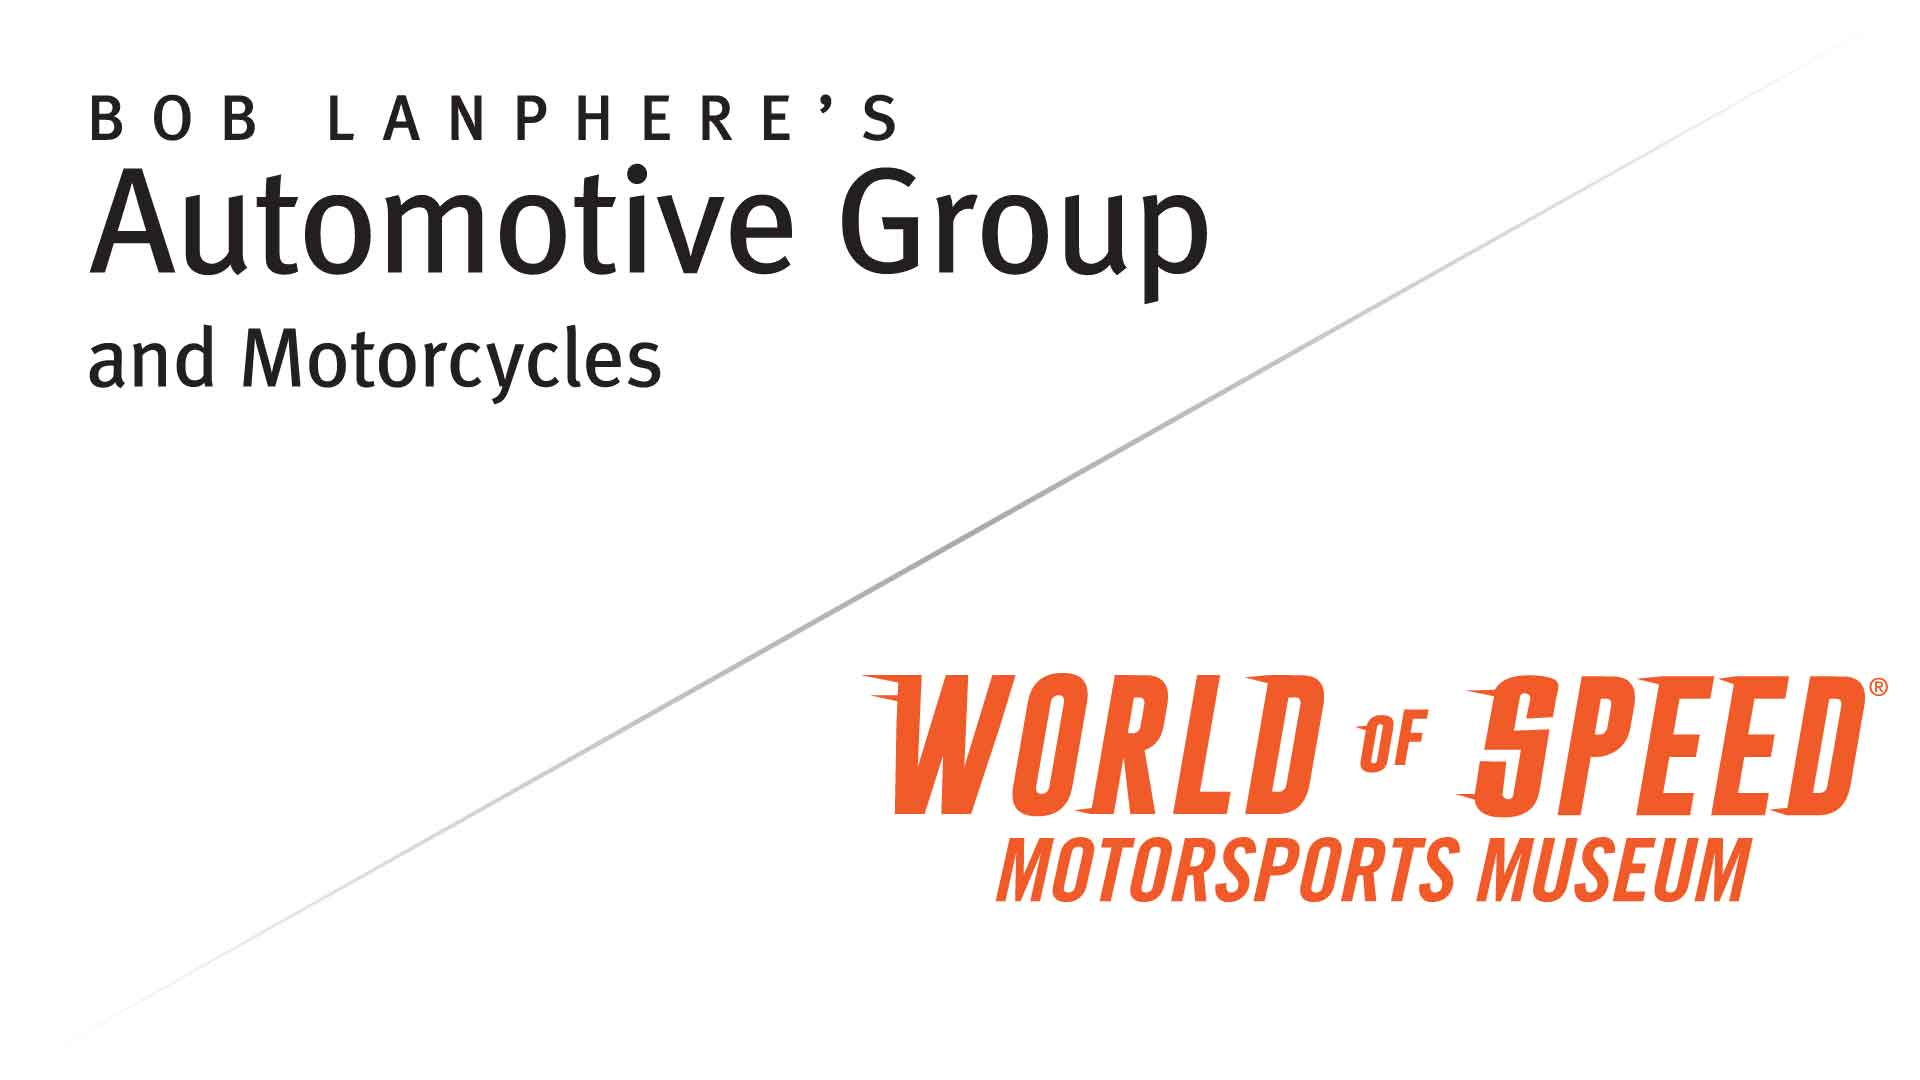 Lanphere Auto Group and Motorcycles and World of Speed Motorsports Museum Join as Partners with Grand Prix of Portland